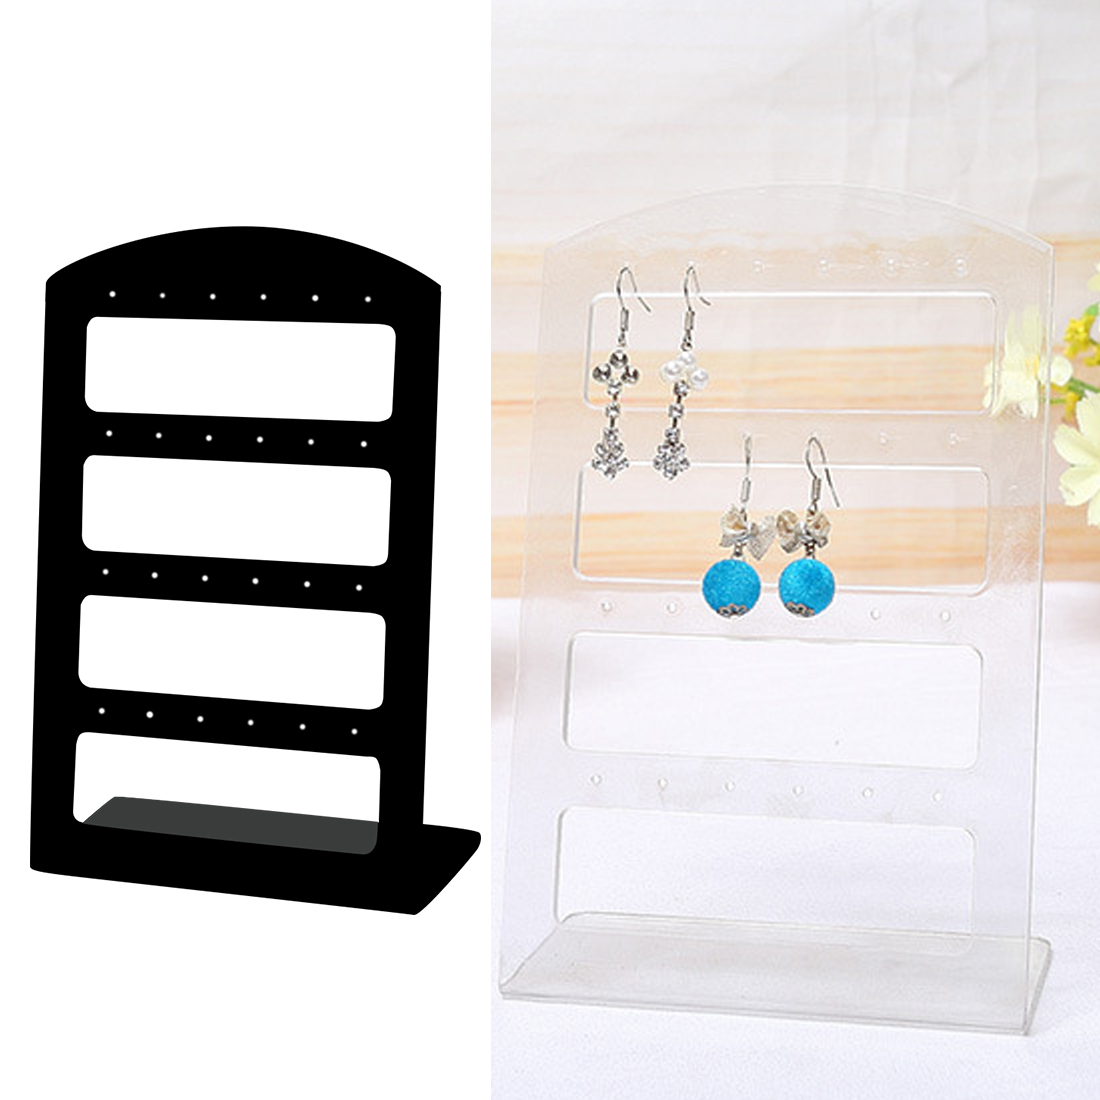 24 Holes Jewelry Organizer Stand Black Plastic Earring Holder Fashion Earrings Display Rack